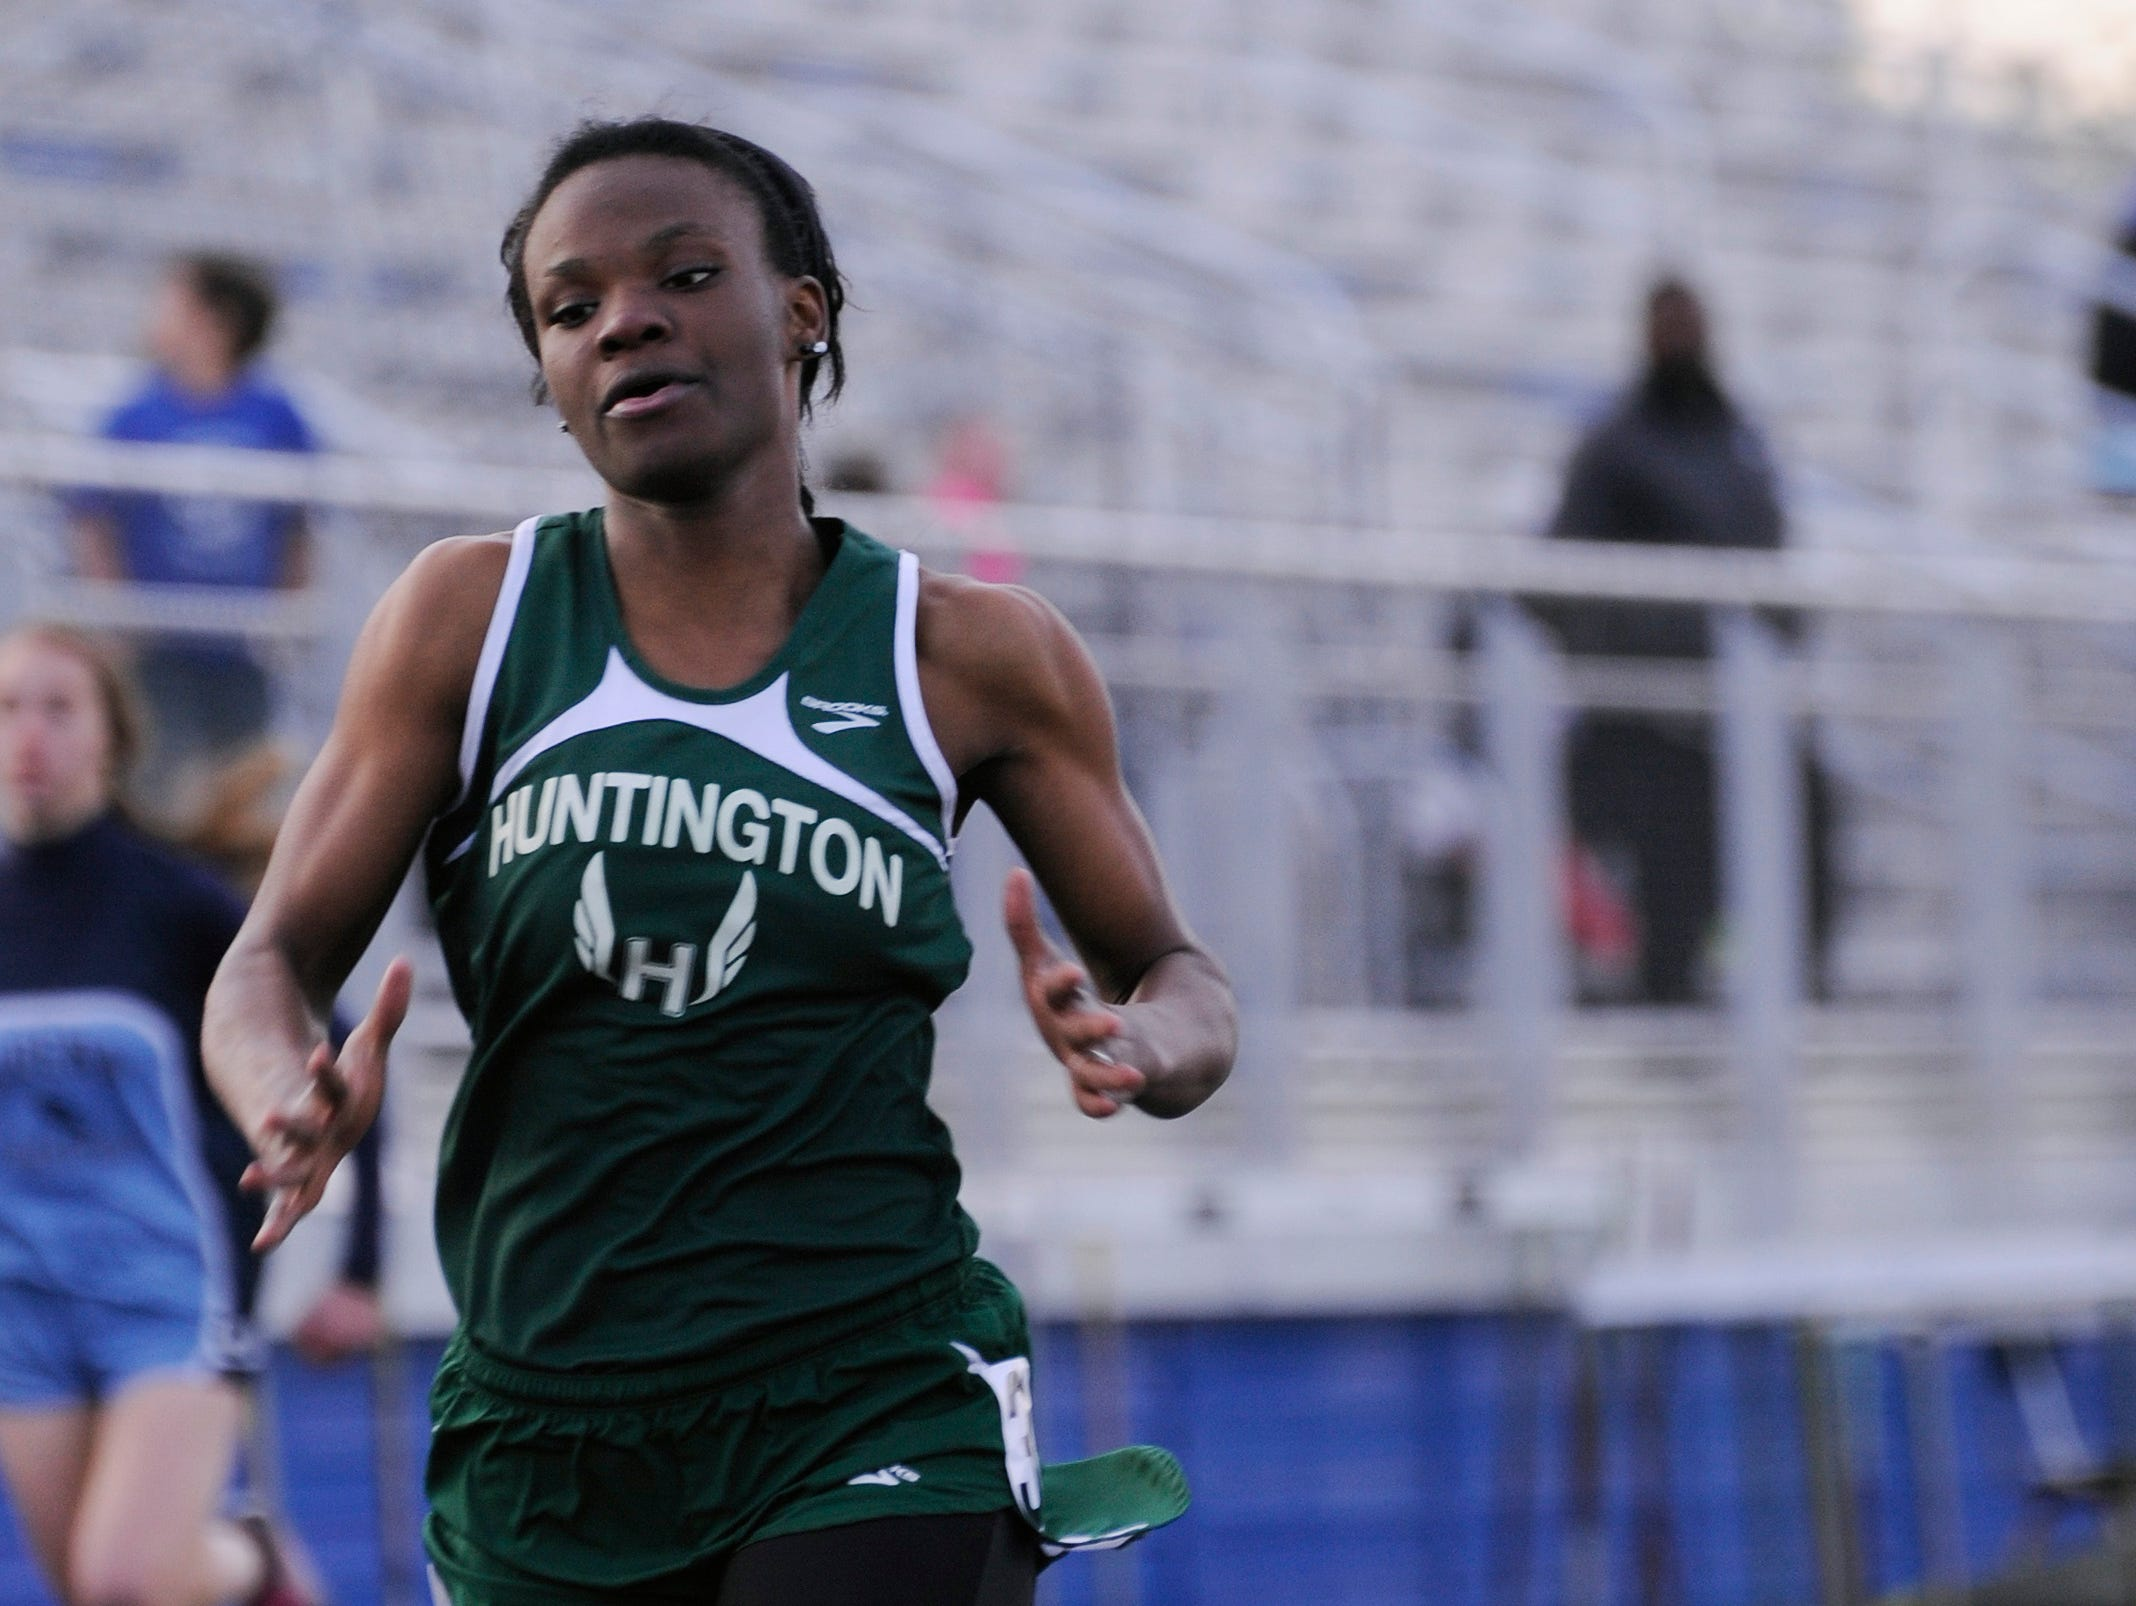 Huntington's Carolane Cox competes in the Cavalier Club Invitational on April 23 at Herrnstein Field.